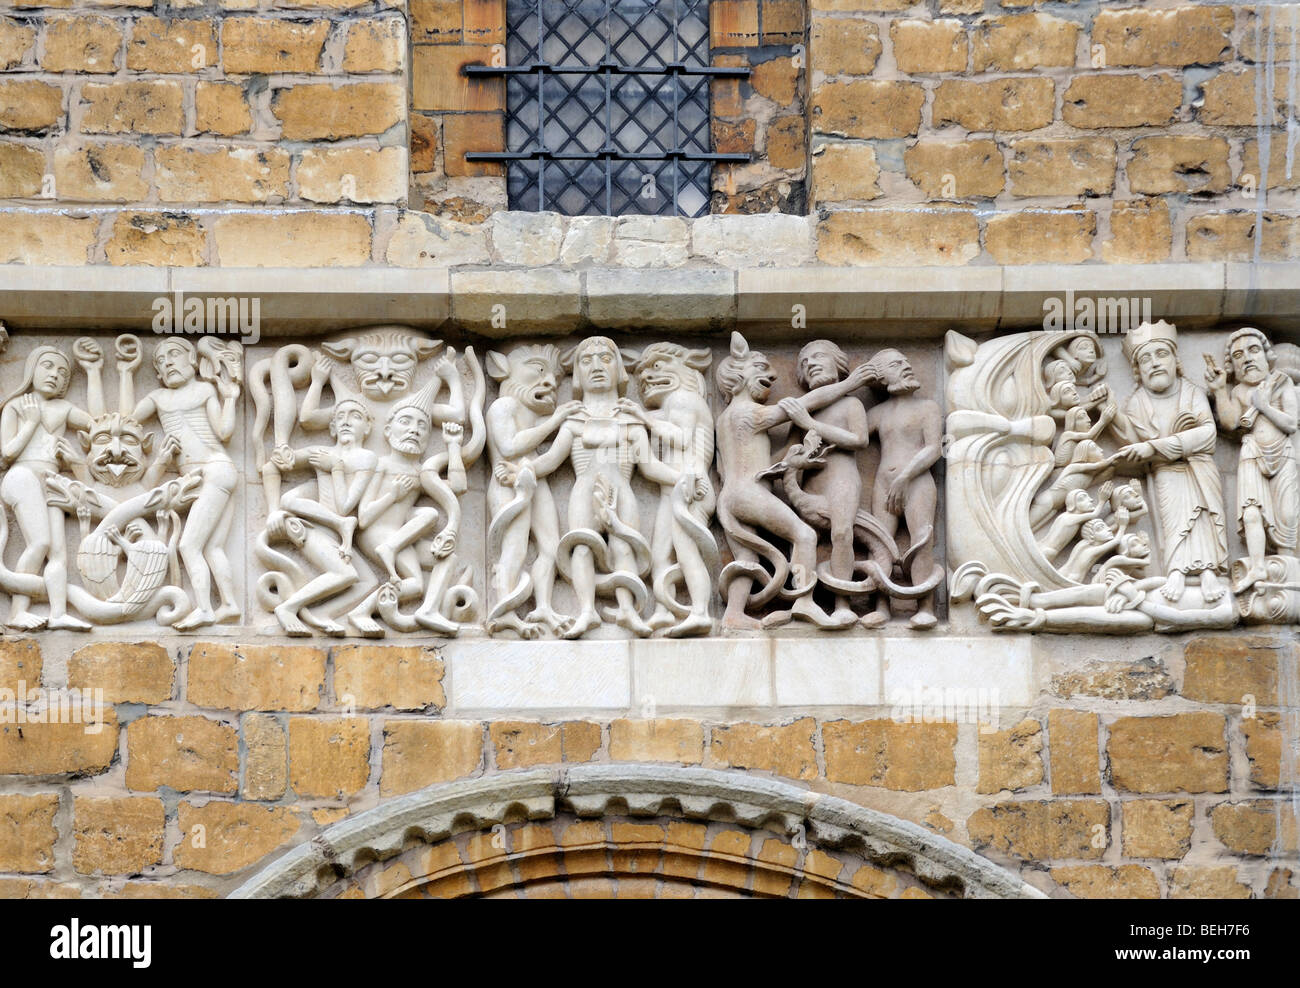 A beautifly carved modern replacement of a mediaeval frieze on the West Front of Lincoln Cathedral. - Stock Image